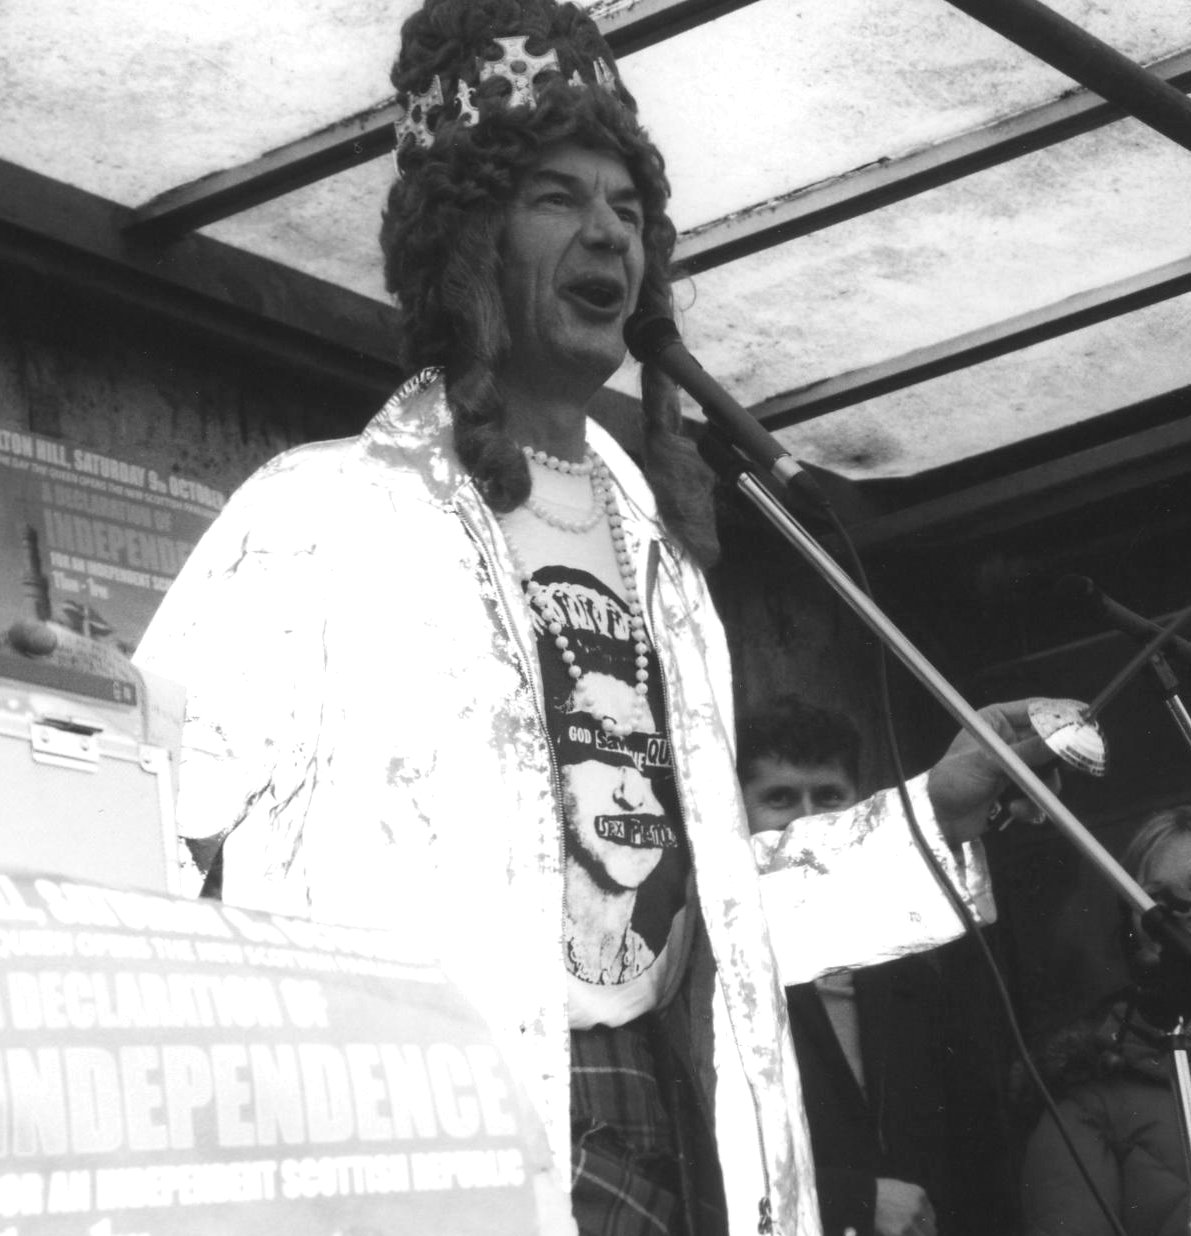 Her Madge at Claton Hill demo, Edinburgh, taken by Myra Armstrong